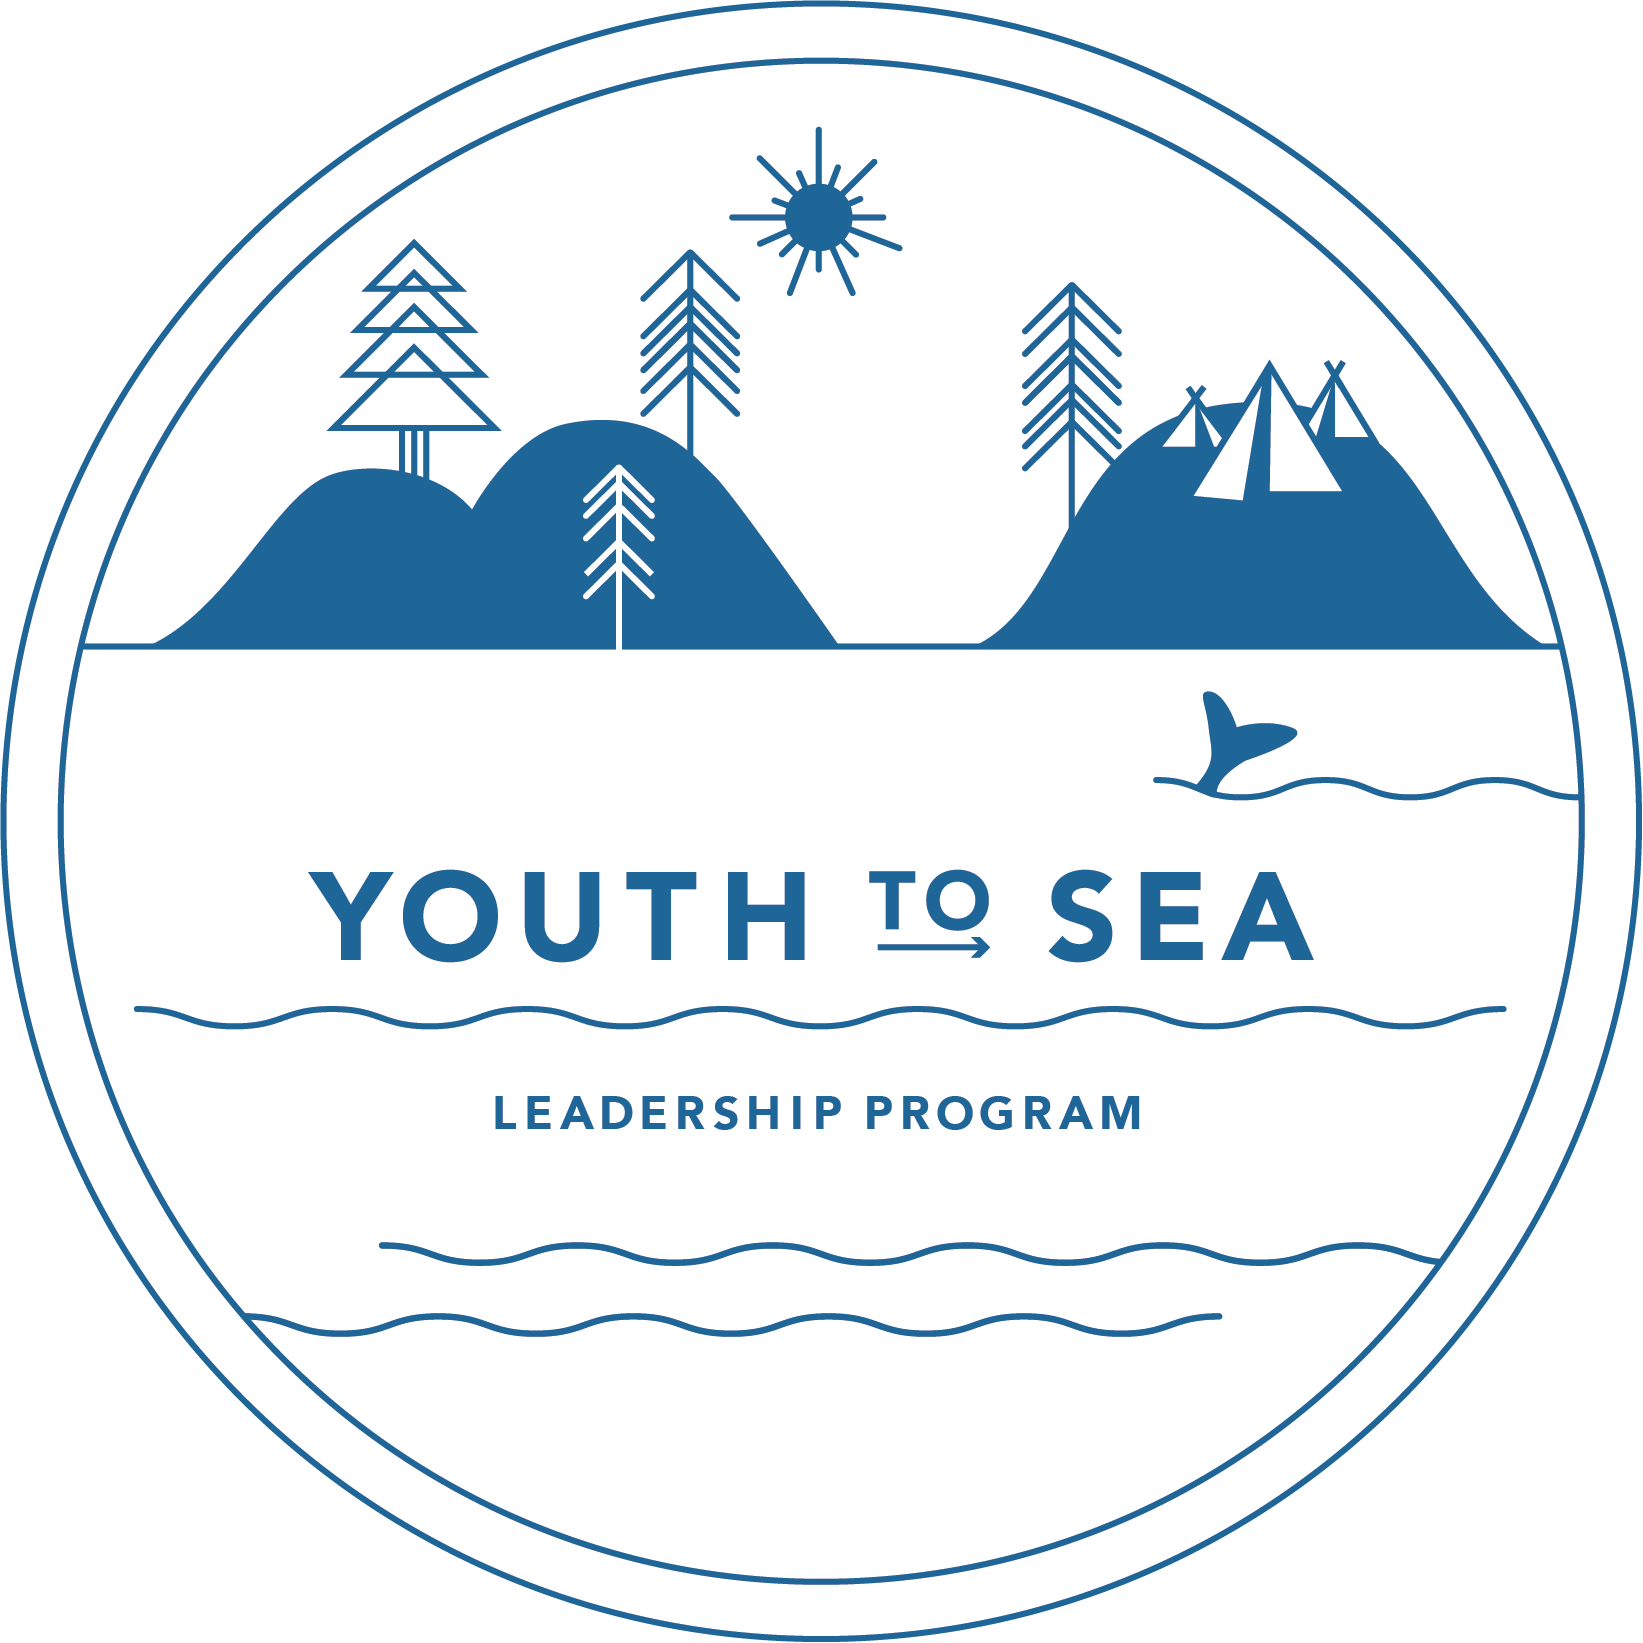 YouthToSea: Council - Youth Leaders Community - Ocean Wise - TIGed